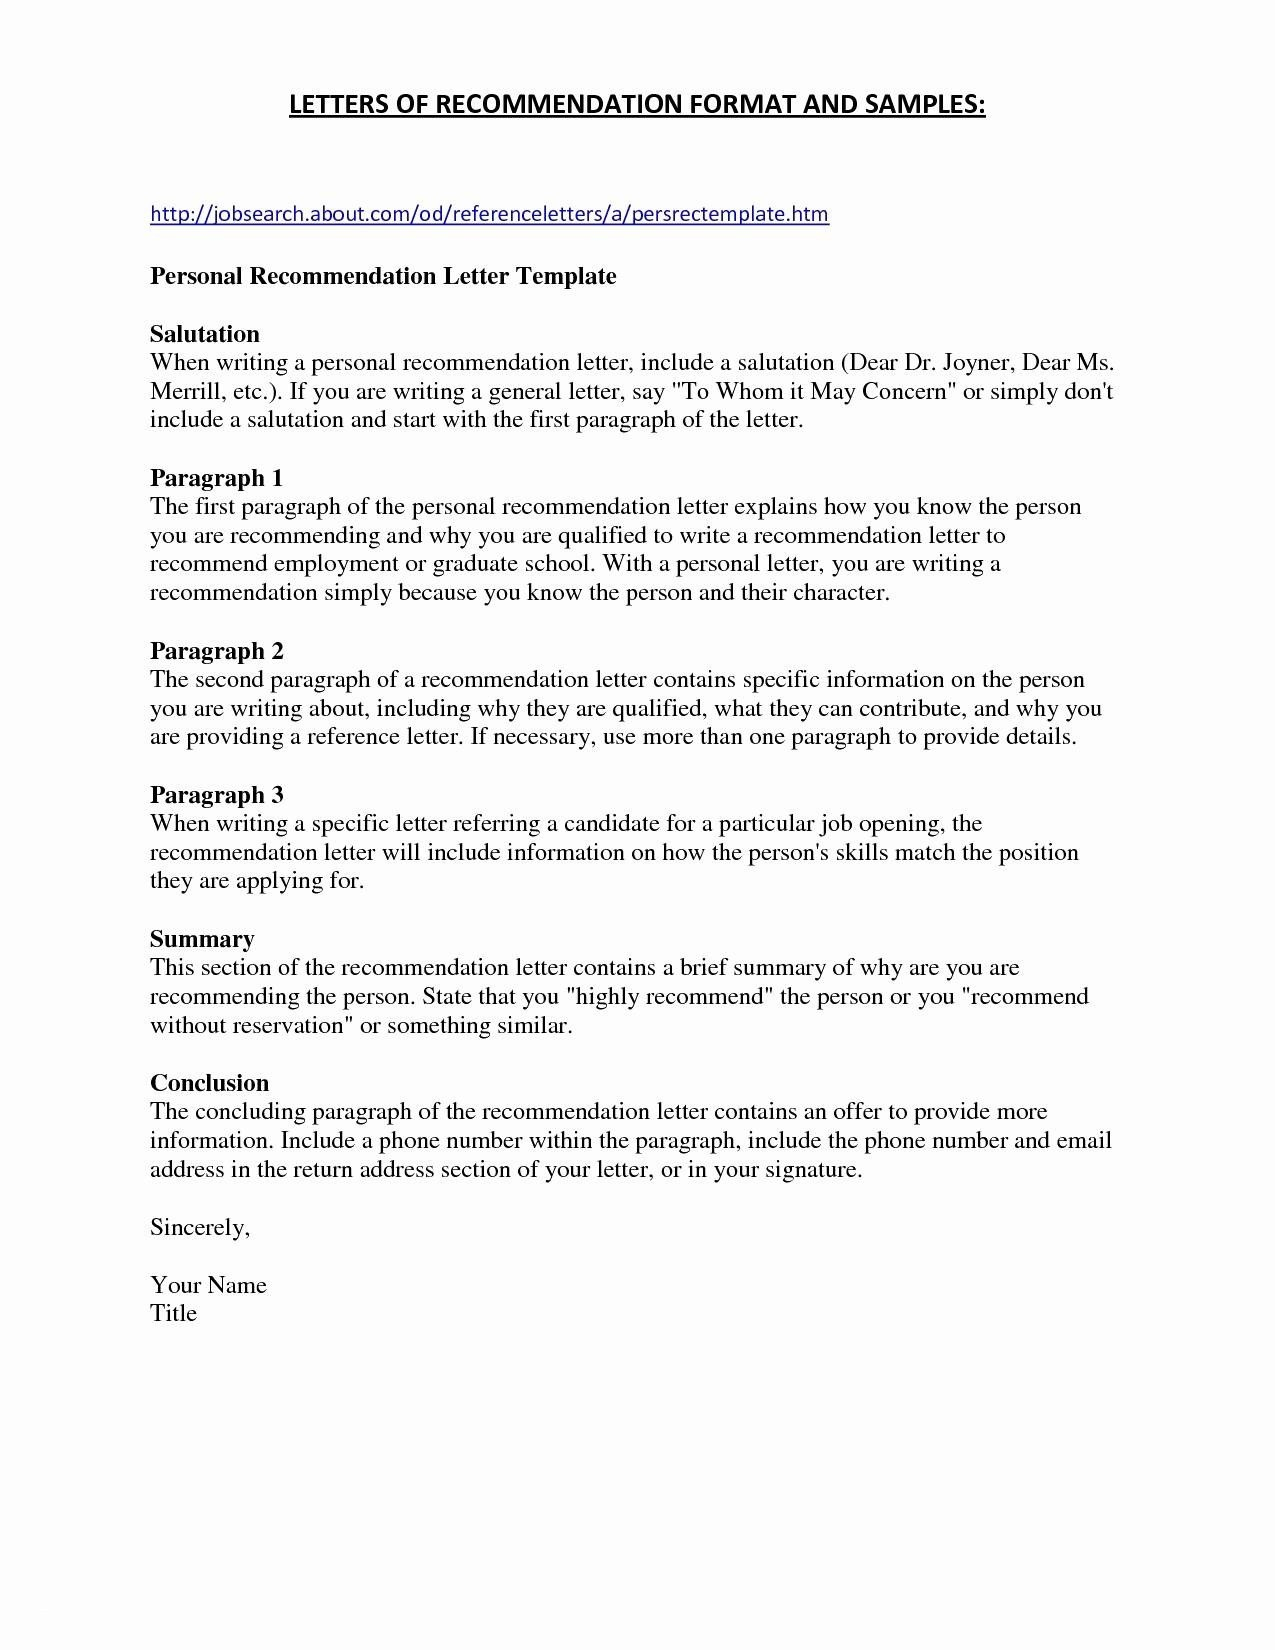 Human Services Resume Template - 21 Human Resources Resume Skills